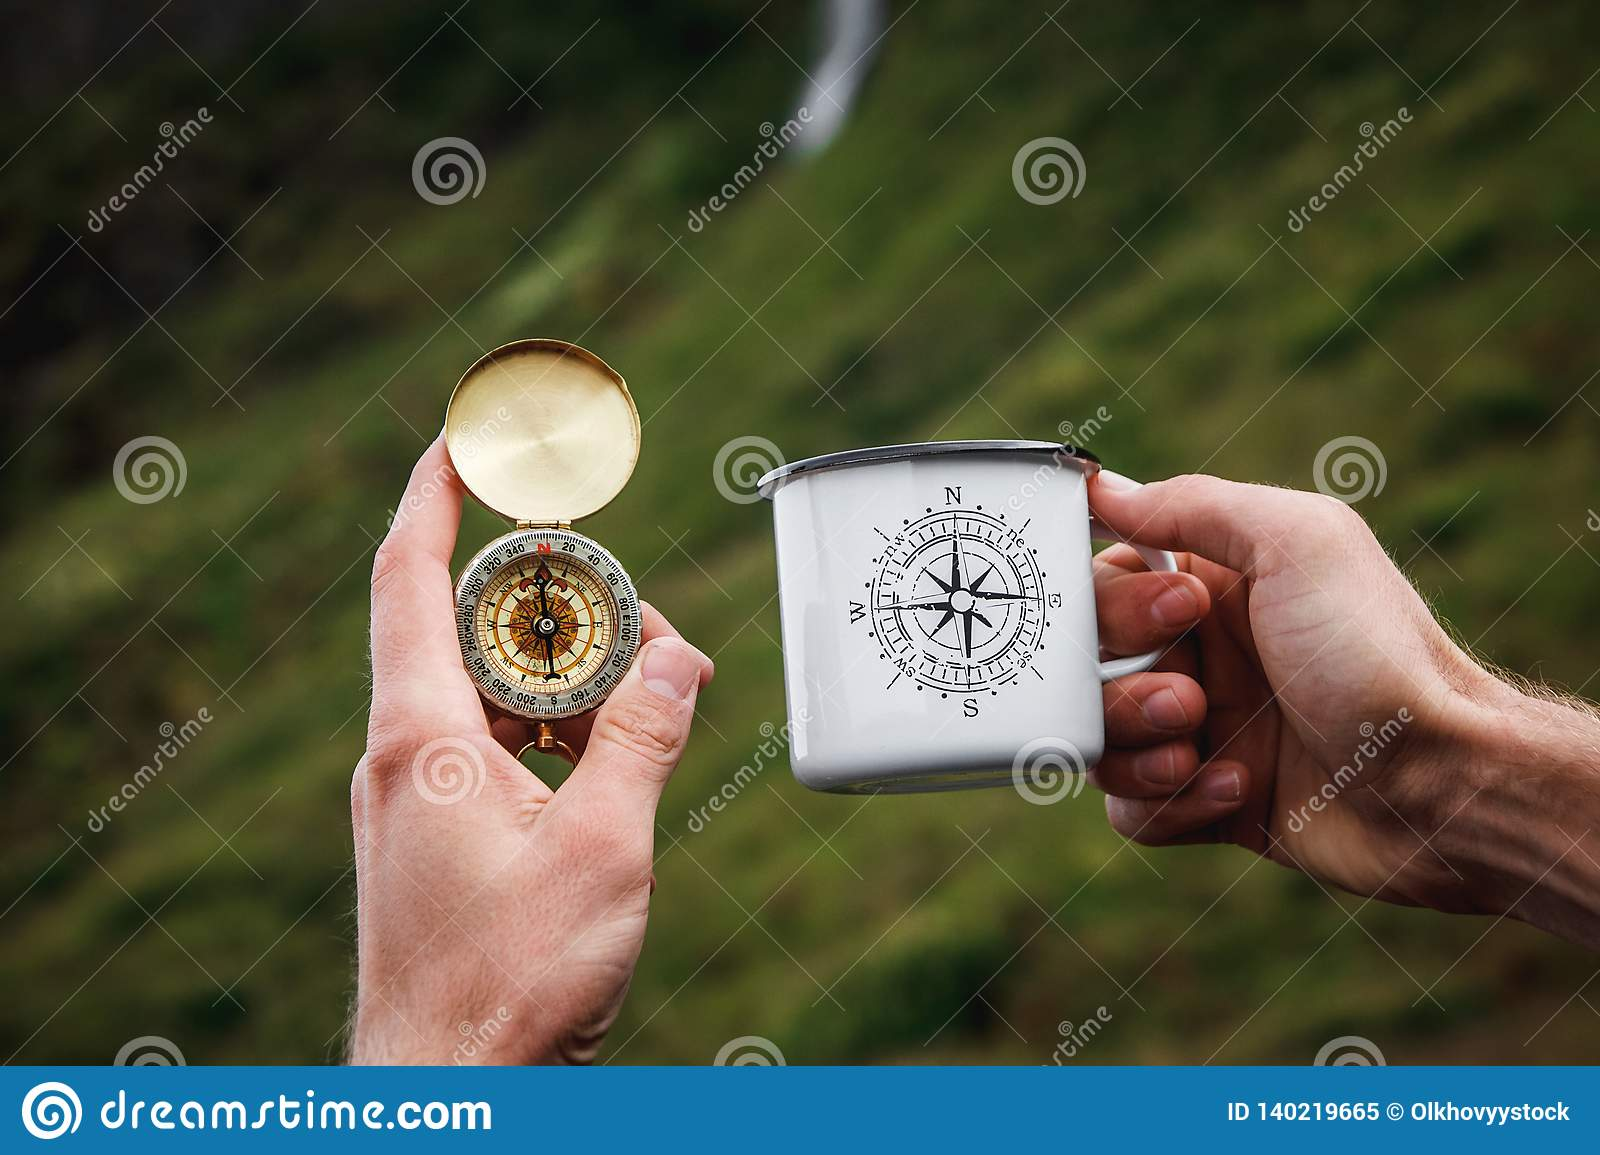 Tea in a tourist metal mug and a compass in Hand Natural background .Vintage Tone